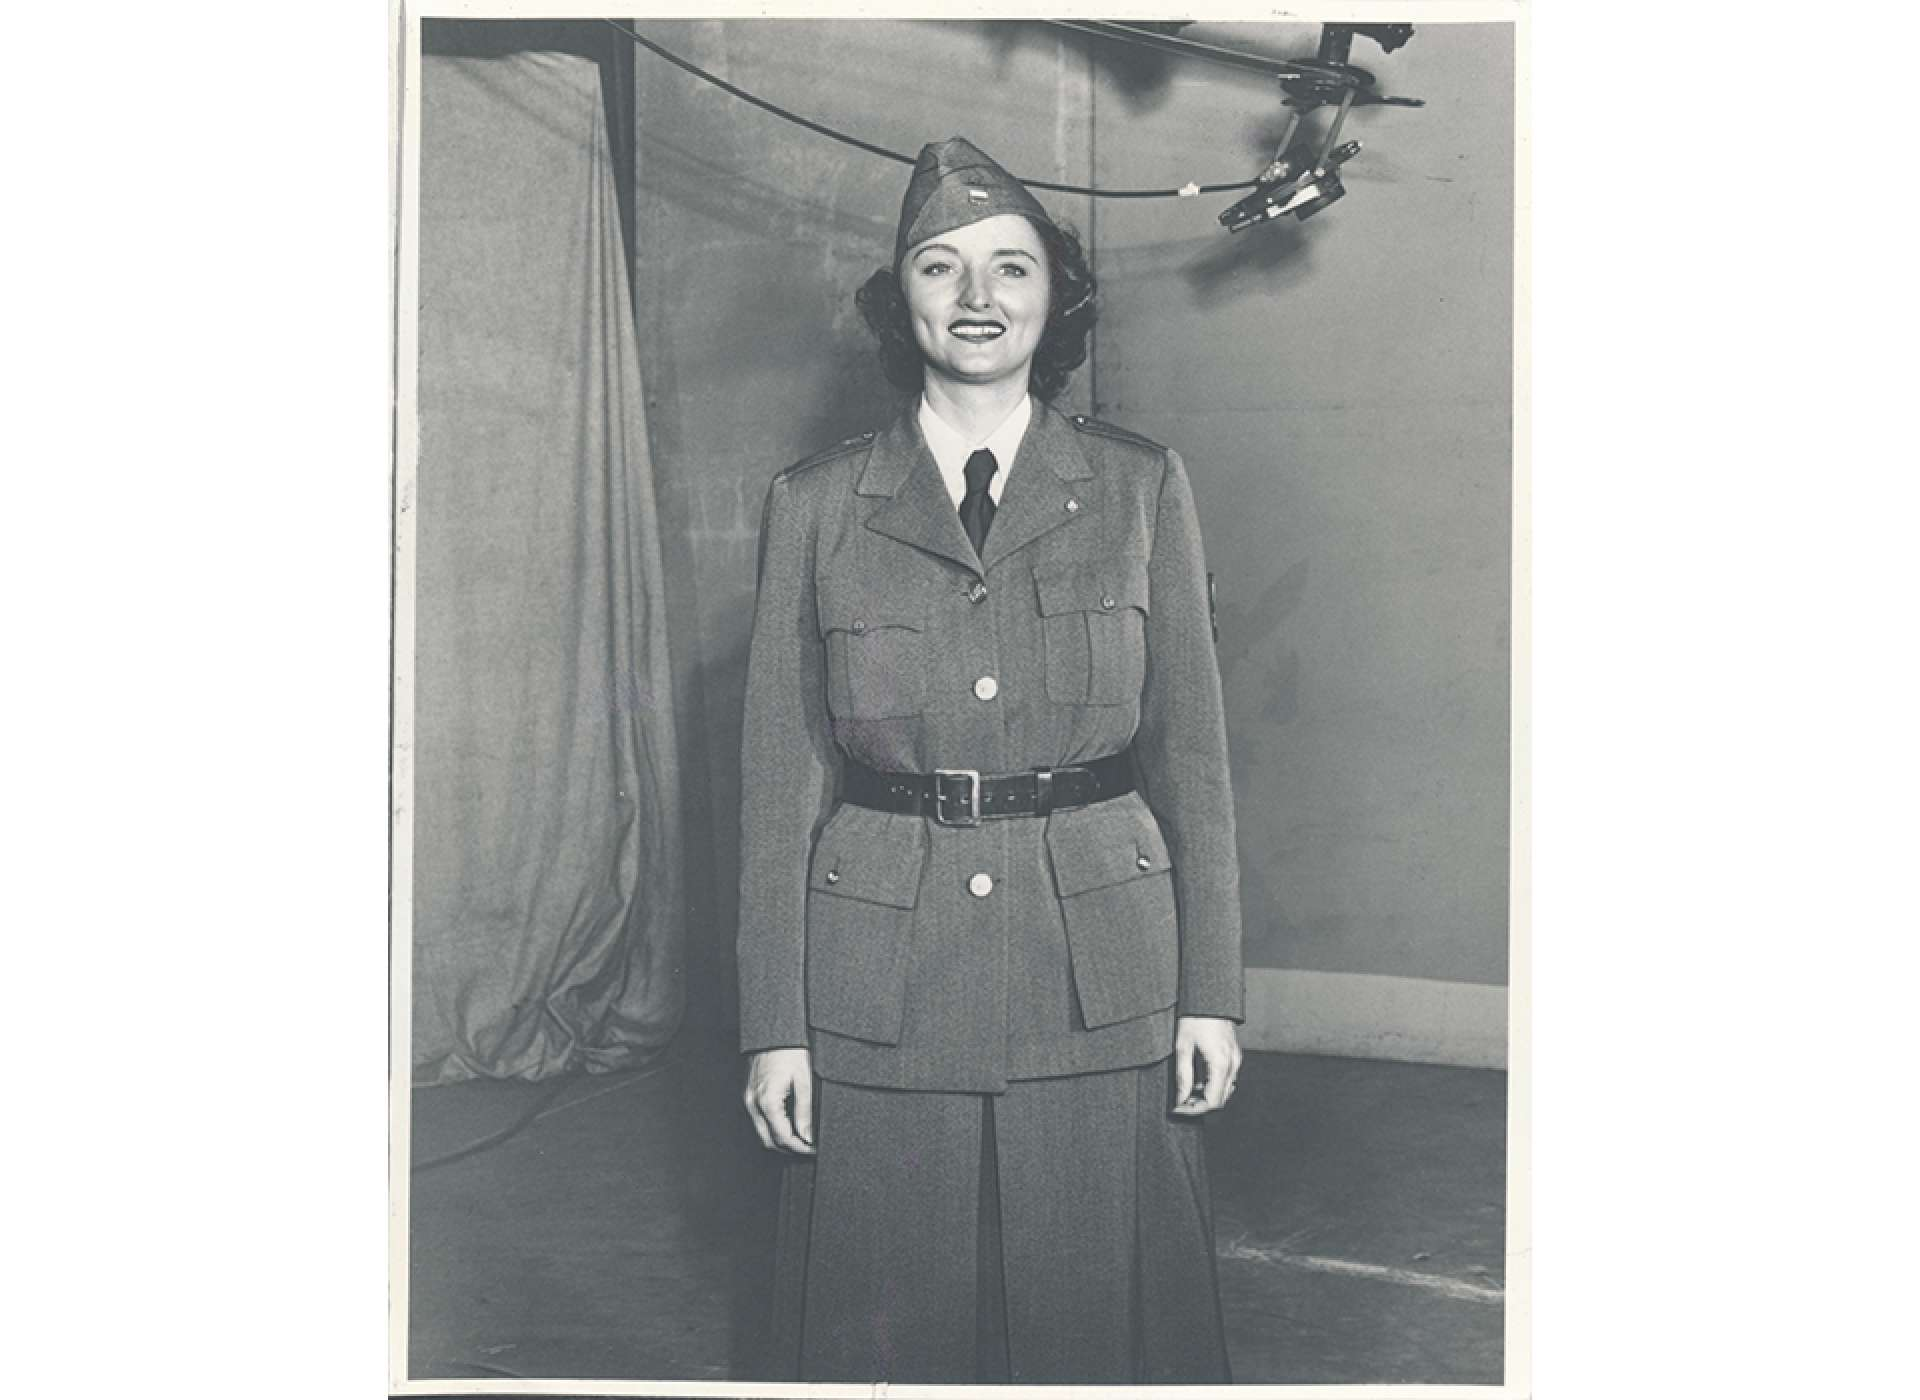 American Women's Voluntary Services Uniform of Dolores Hope